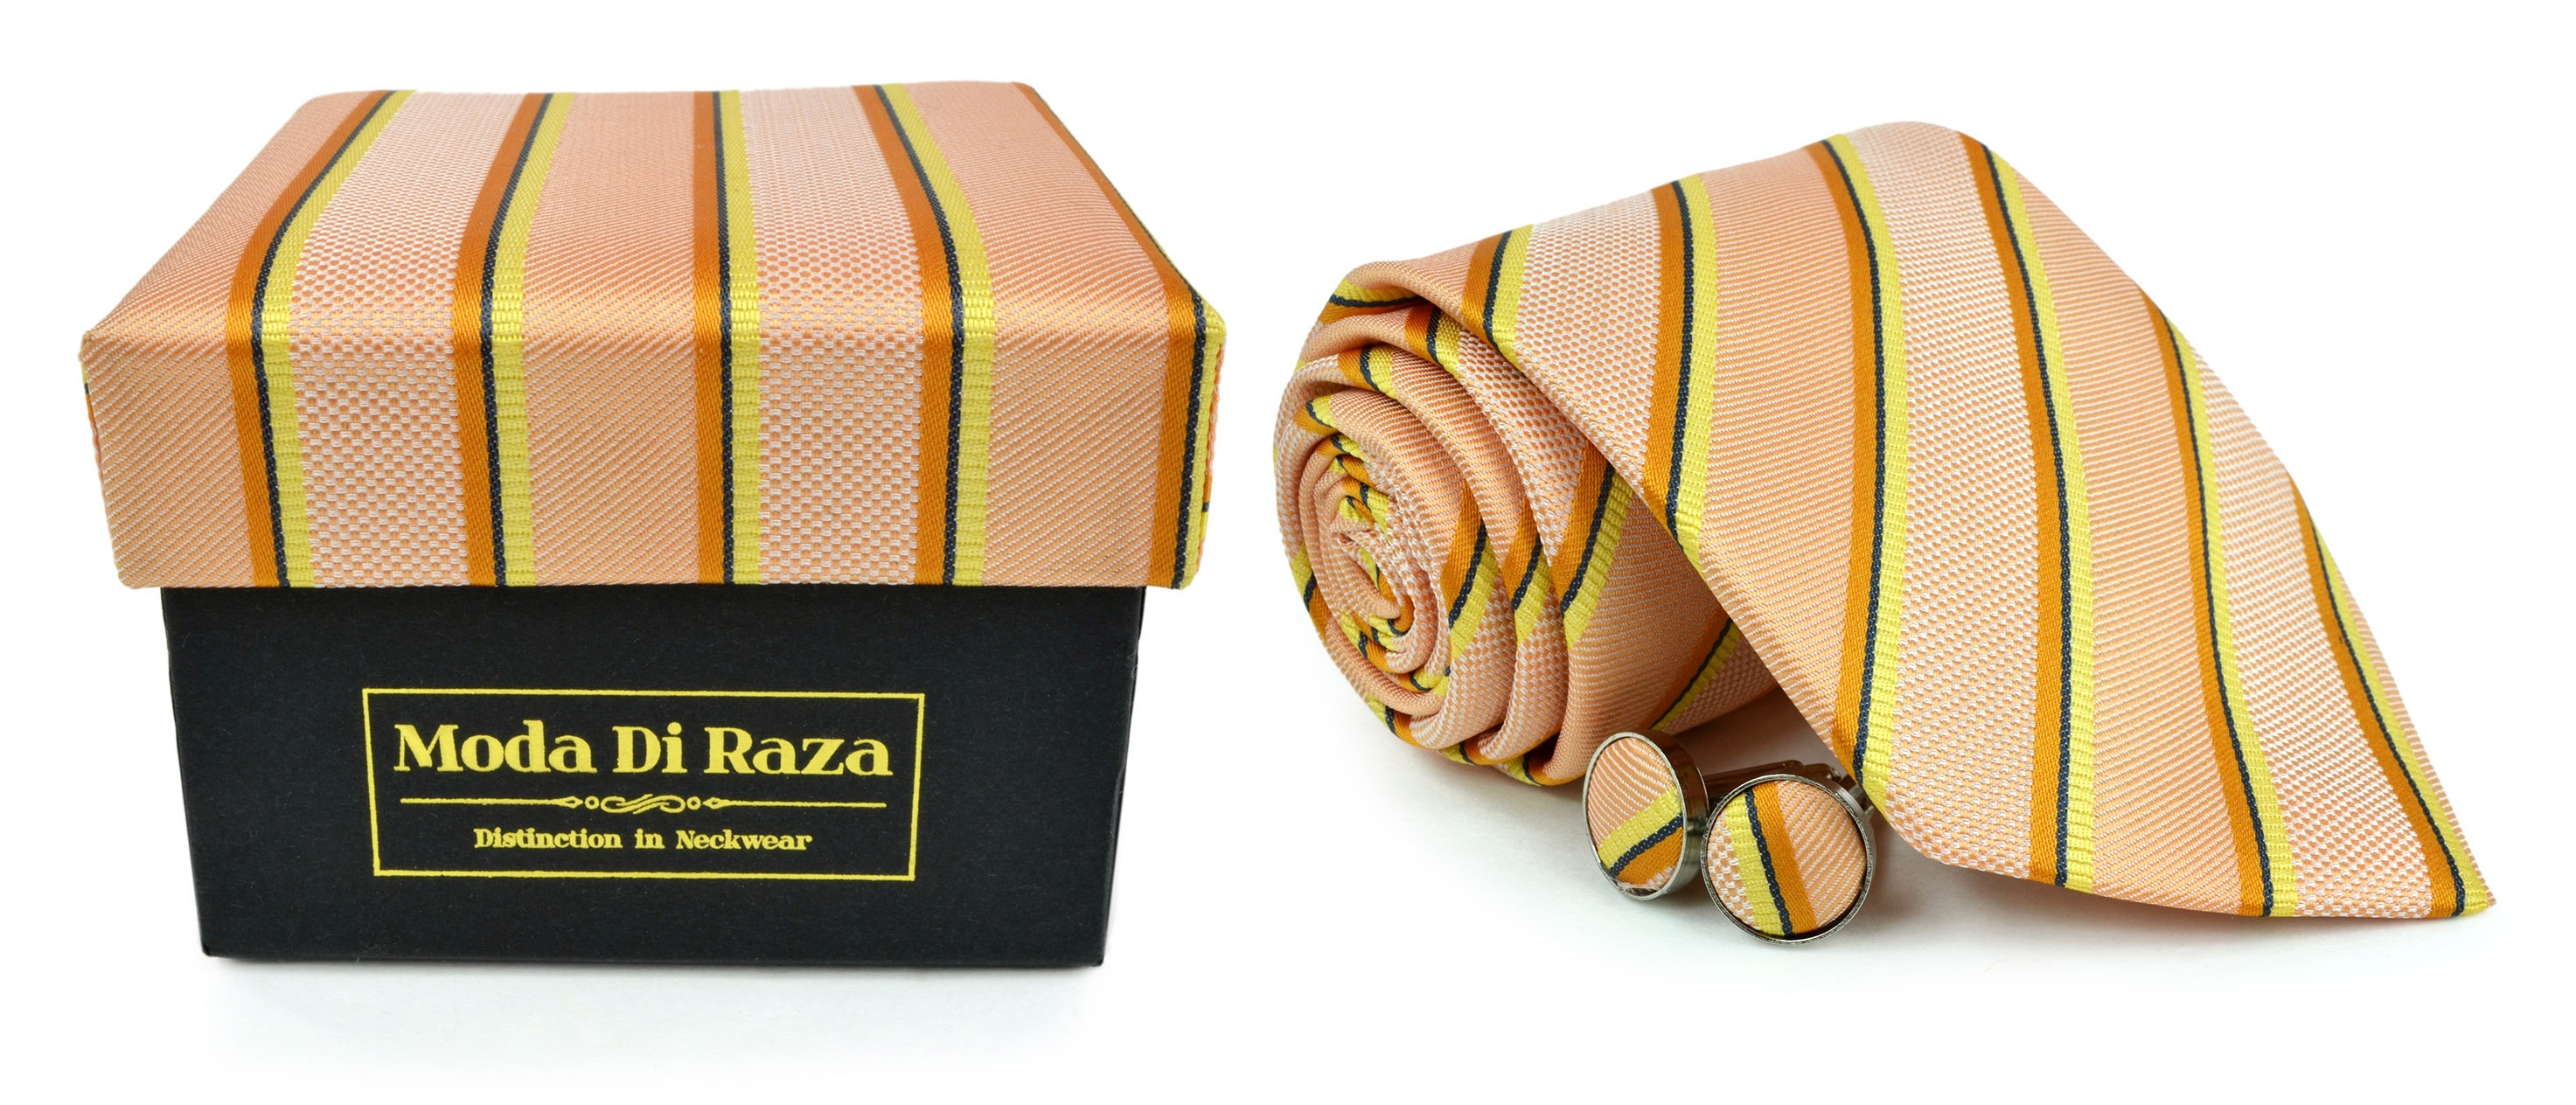 Moda Di Raza Men's NeckTie 3.0 With Cufflink n Gift Box Wedding Formal Events - Orange